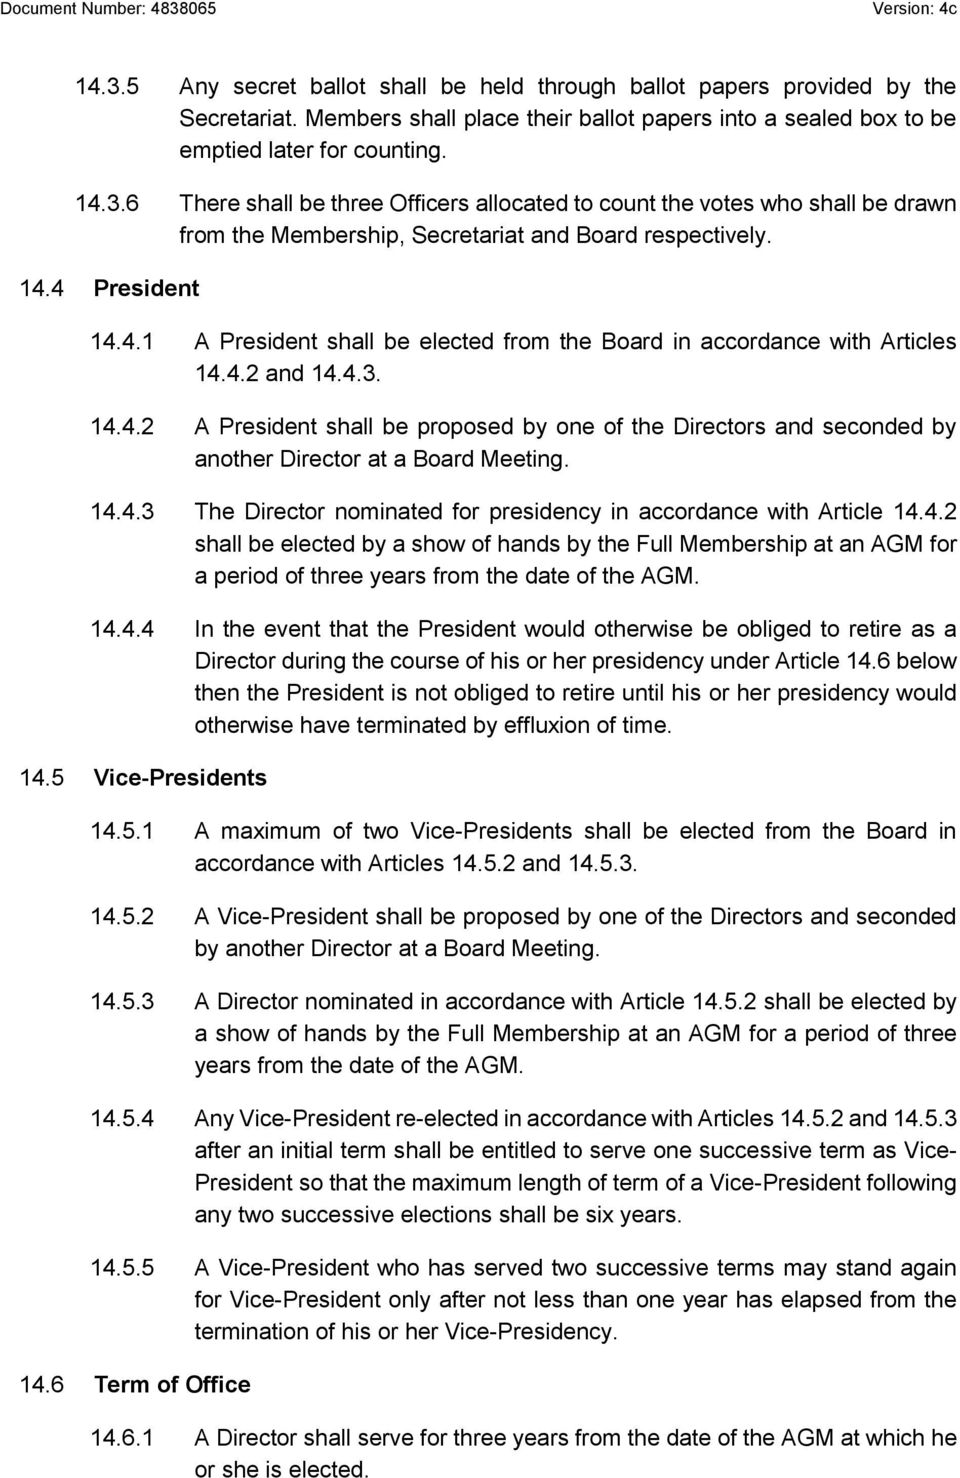 14.4.3 The Director nominated for presidency in accordance with Article 14.4.2 shall be elected by a show of hands by the Full Membership at an AGM for a period of three years from the date of the AGM.